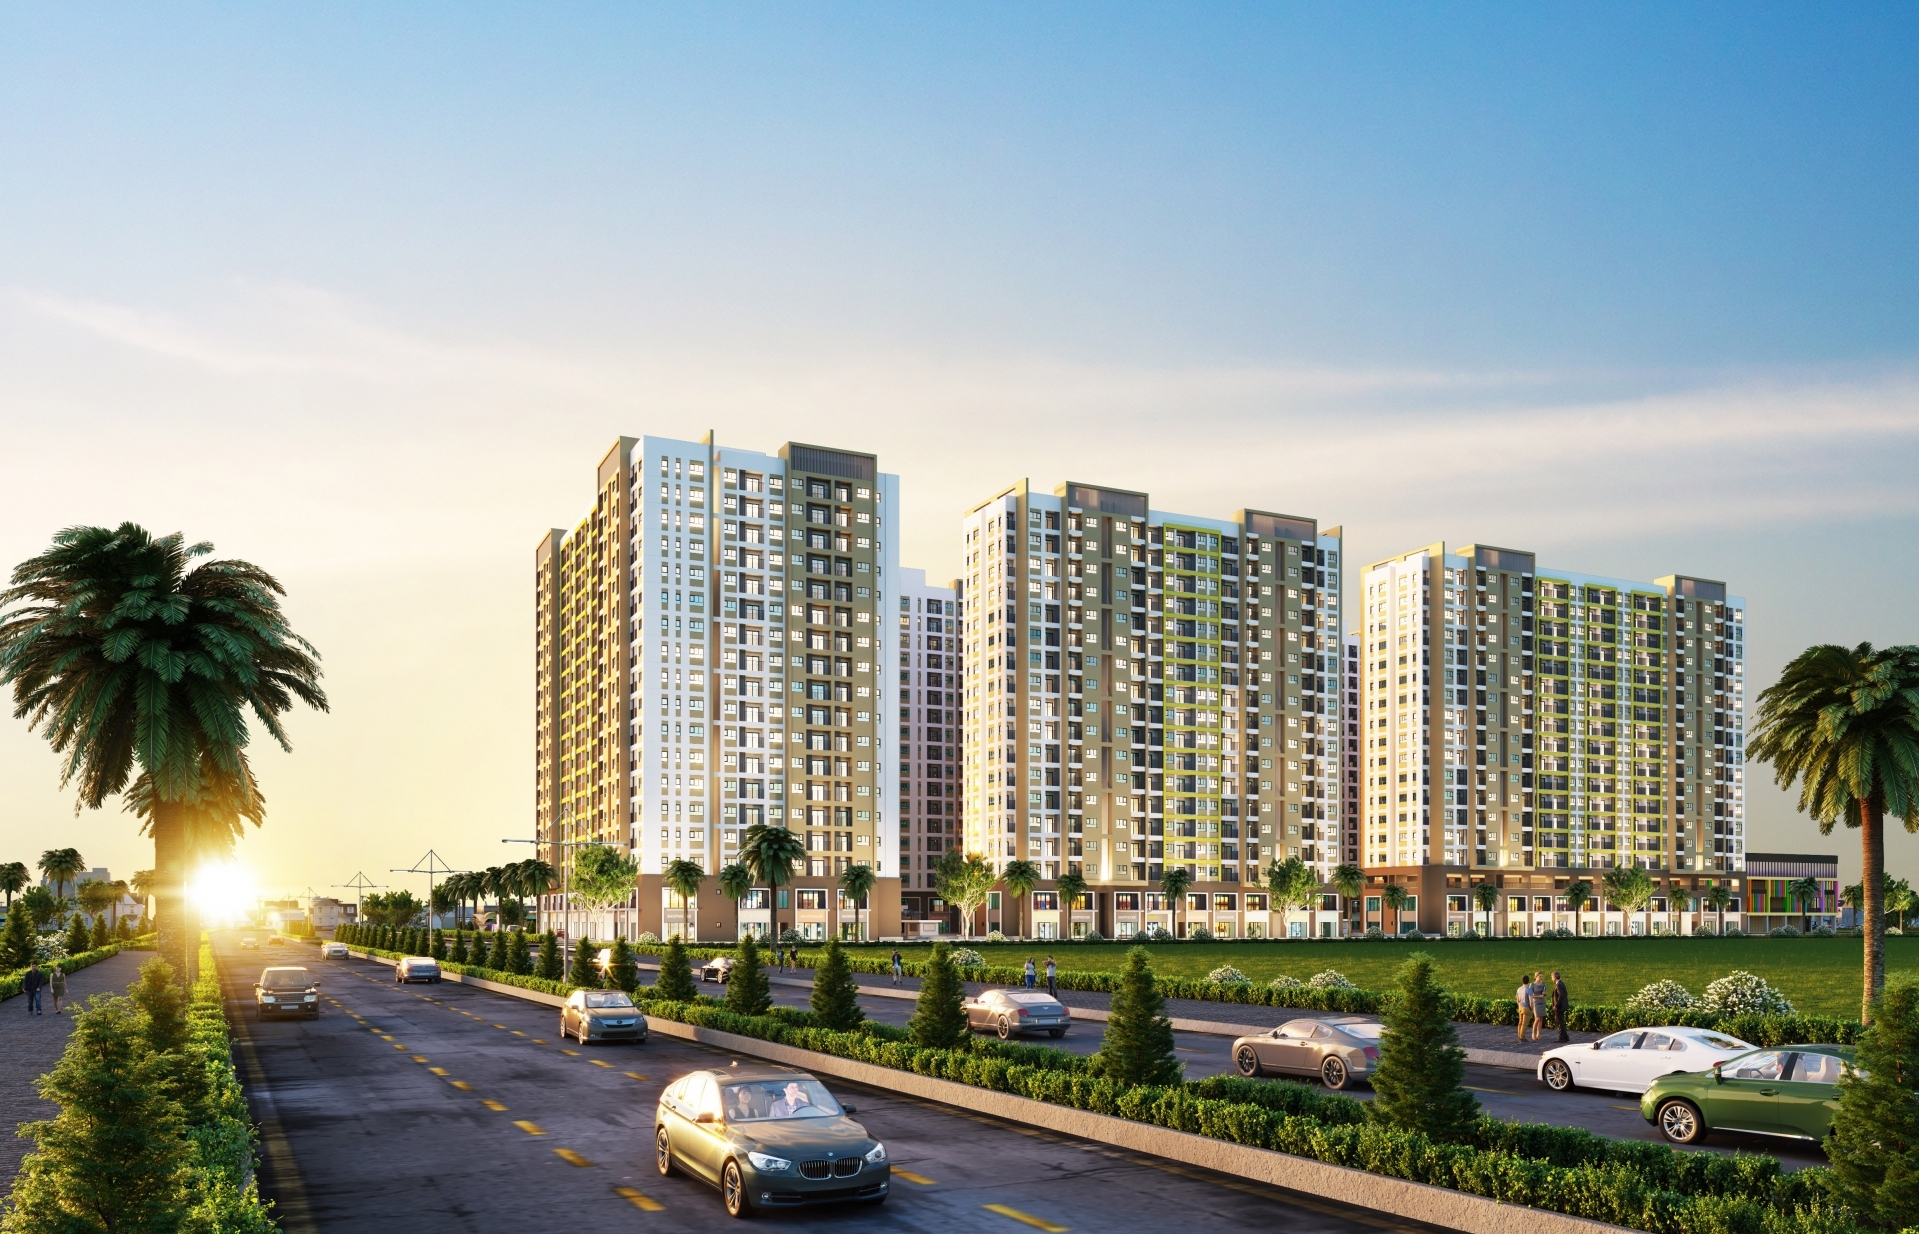 hung thinh land posted strong growth in scale